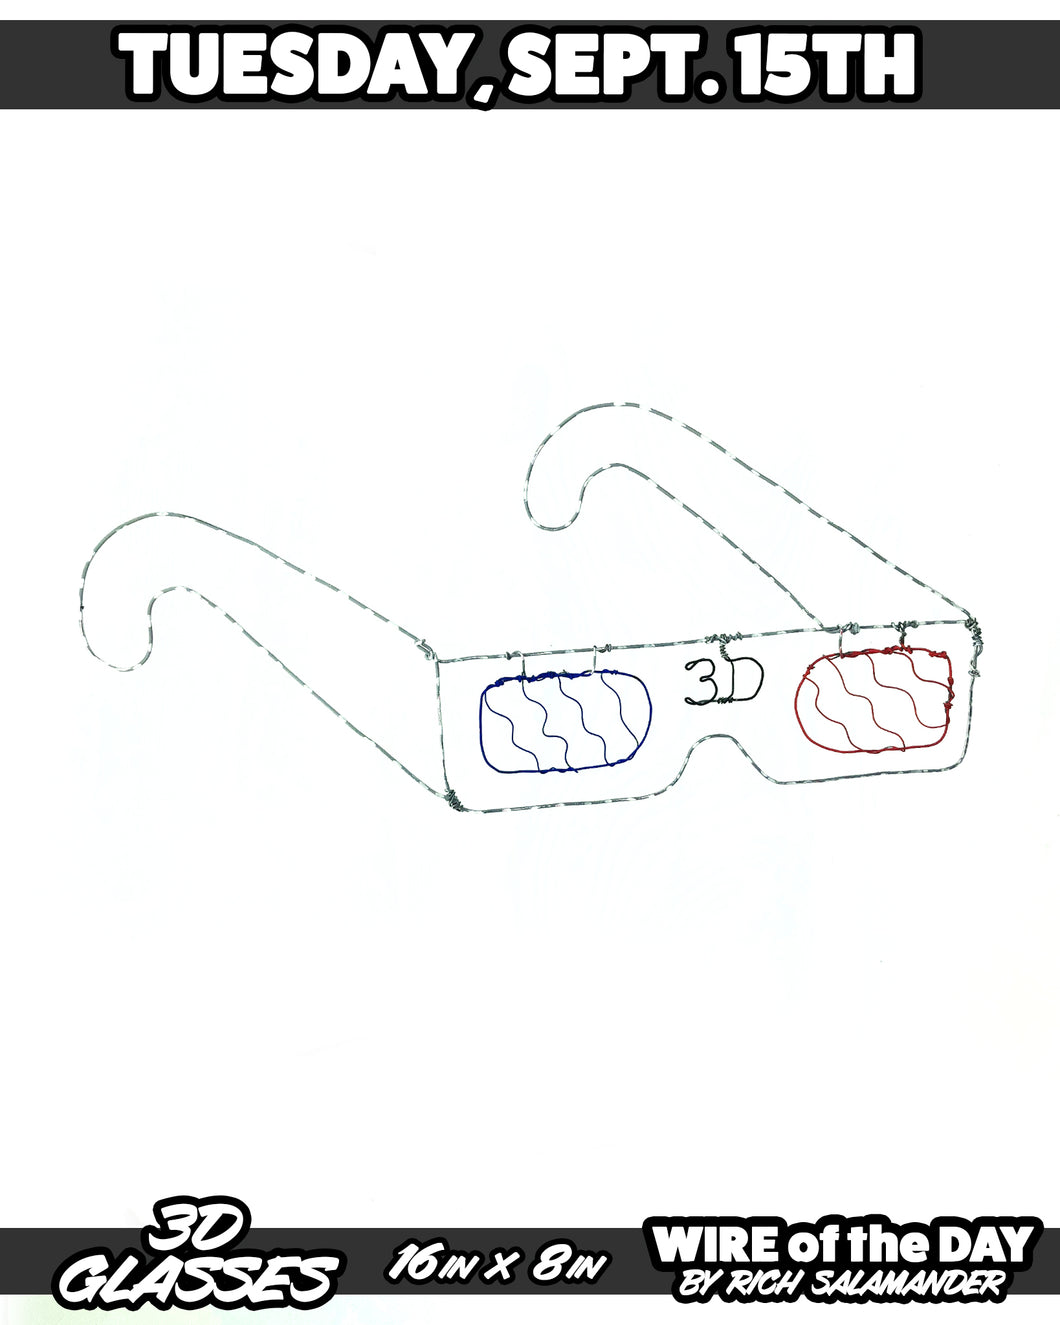 WIRE of the DAY 3D GLASSES